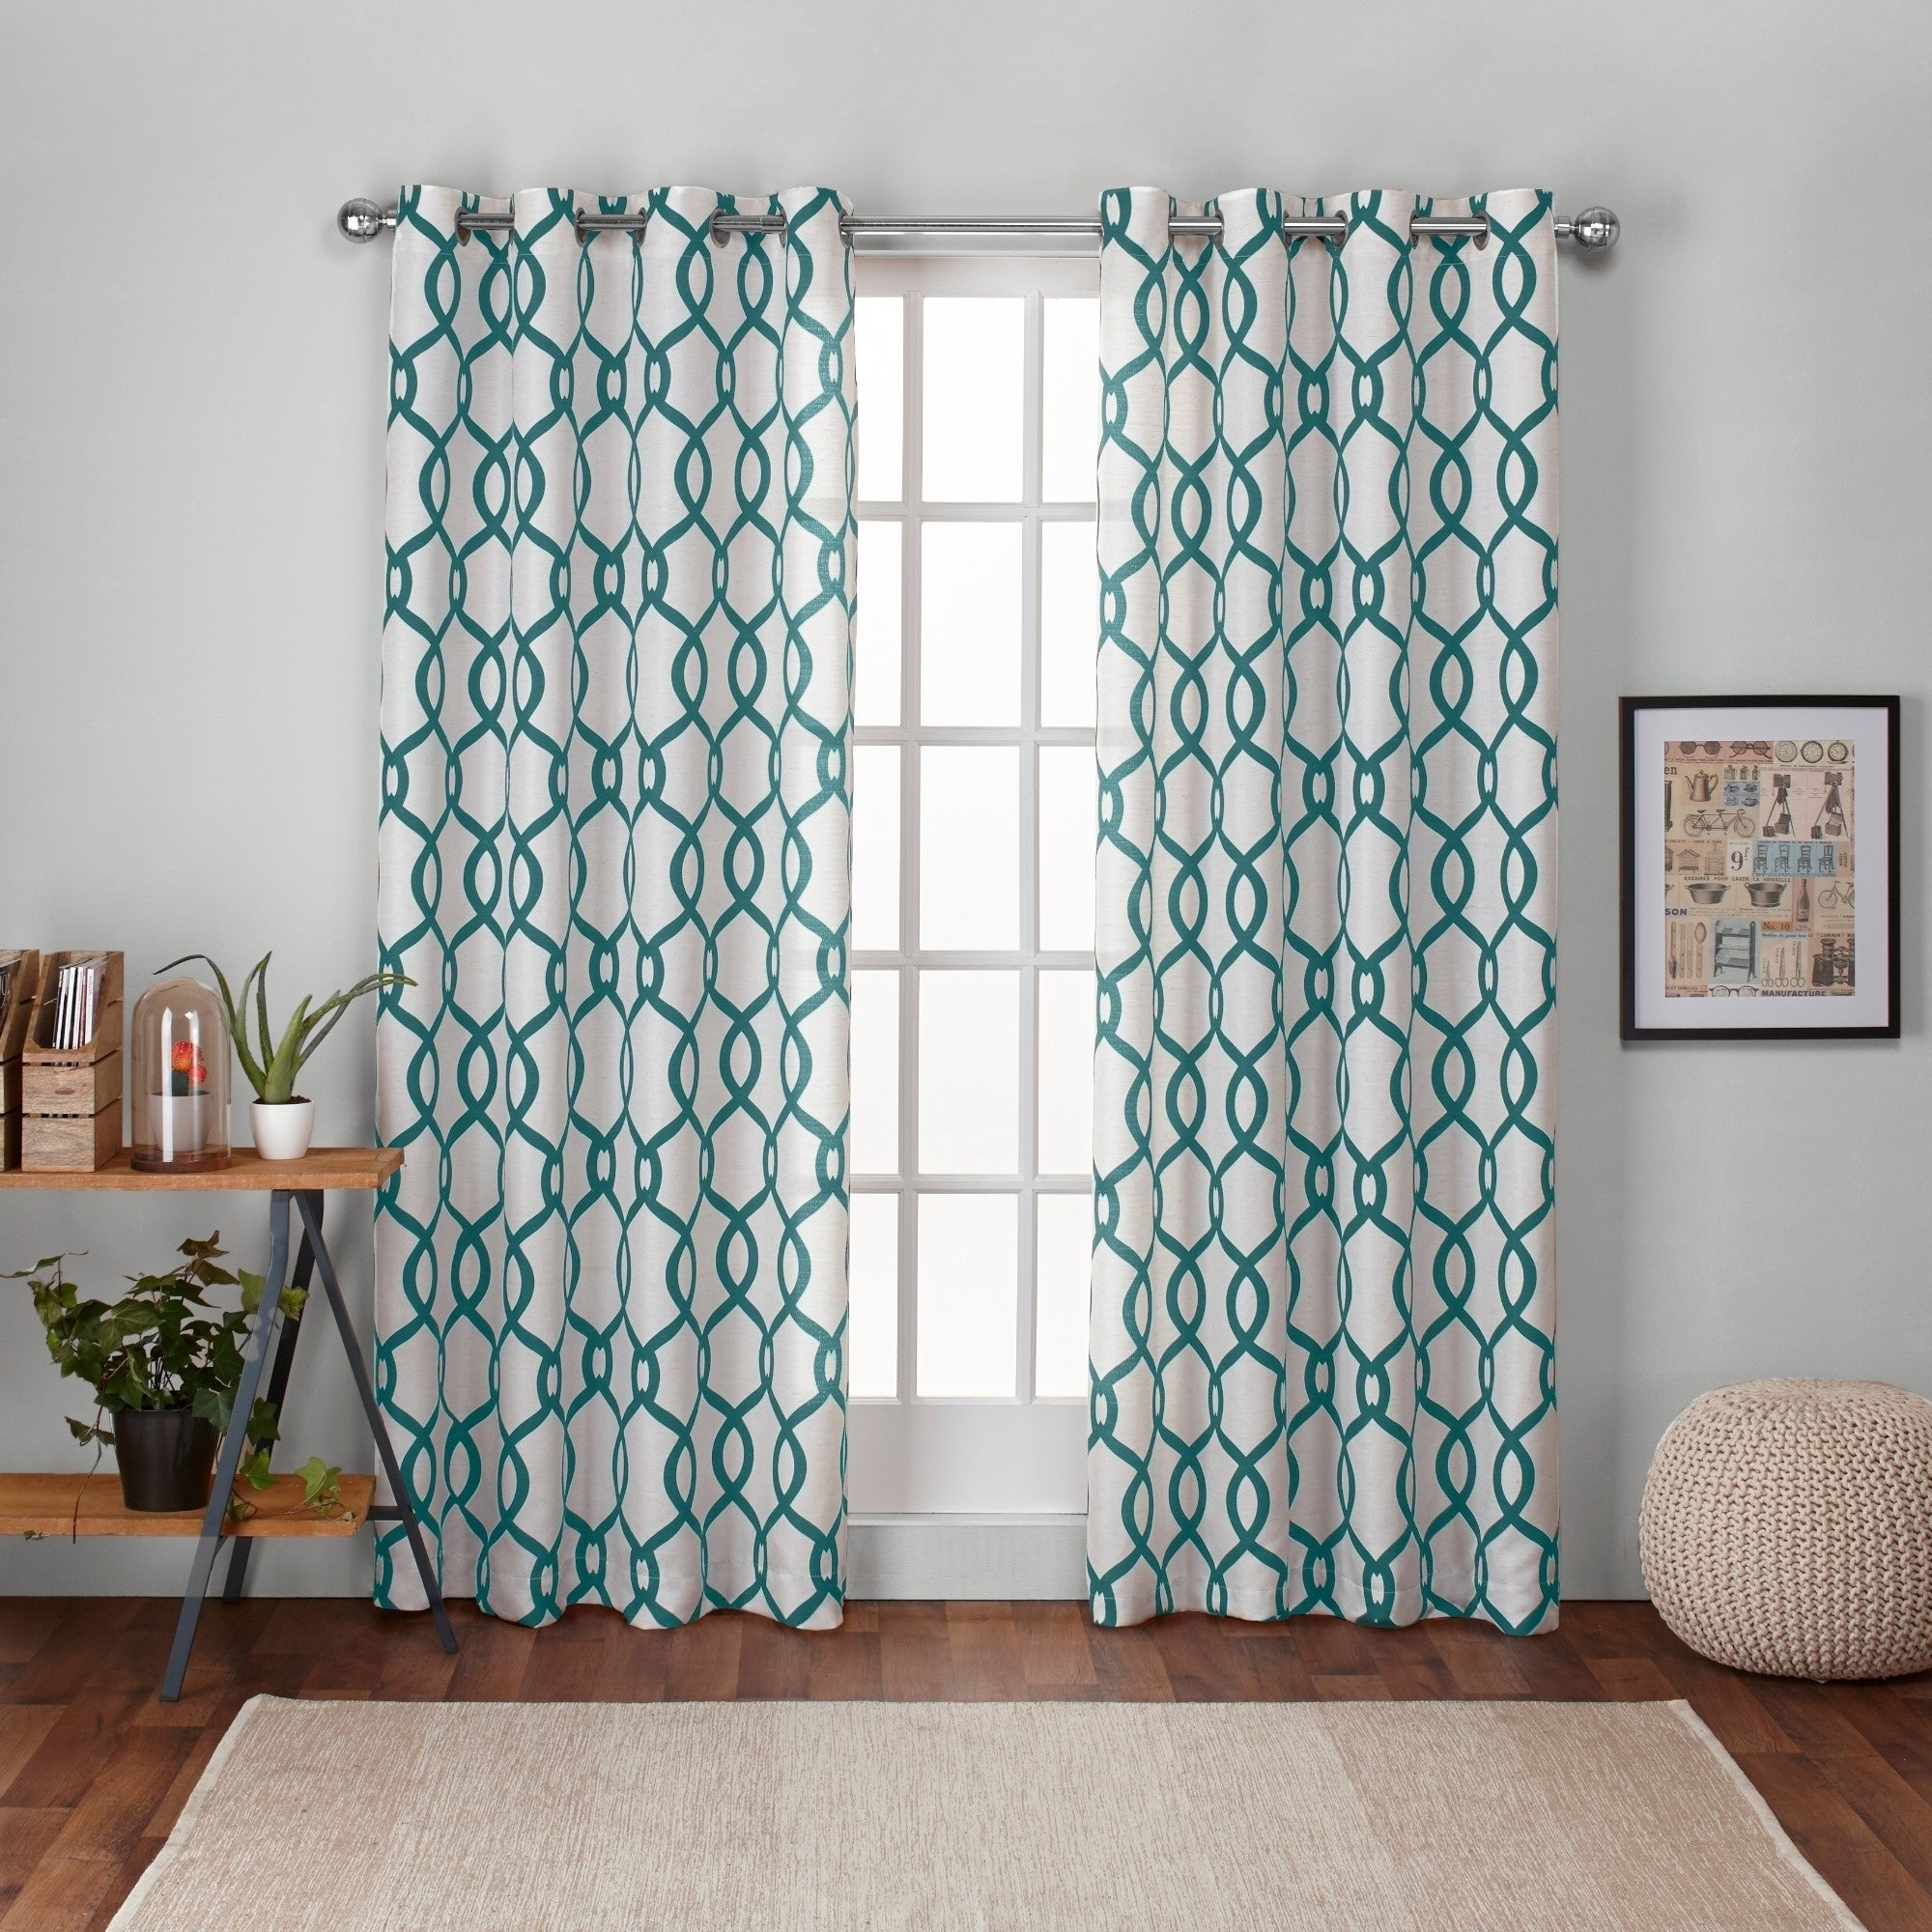 Details About Ati Home Kochi Linen Blend Window Grommet Top Curtain Panel Pair Within Oakdale Textured Linen Sheer Grommet Top Curtain Panel Pairs (View 19 of 20)